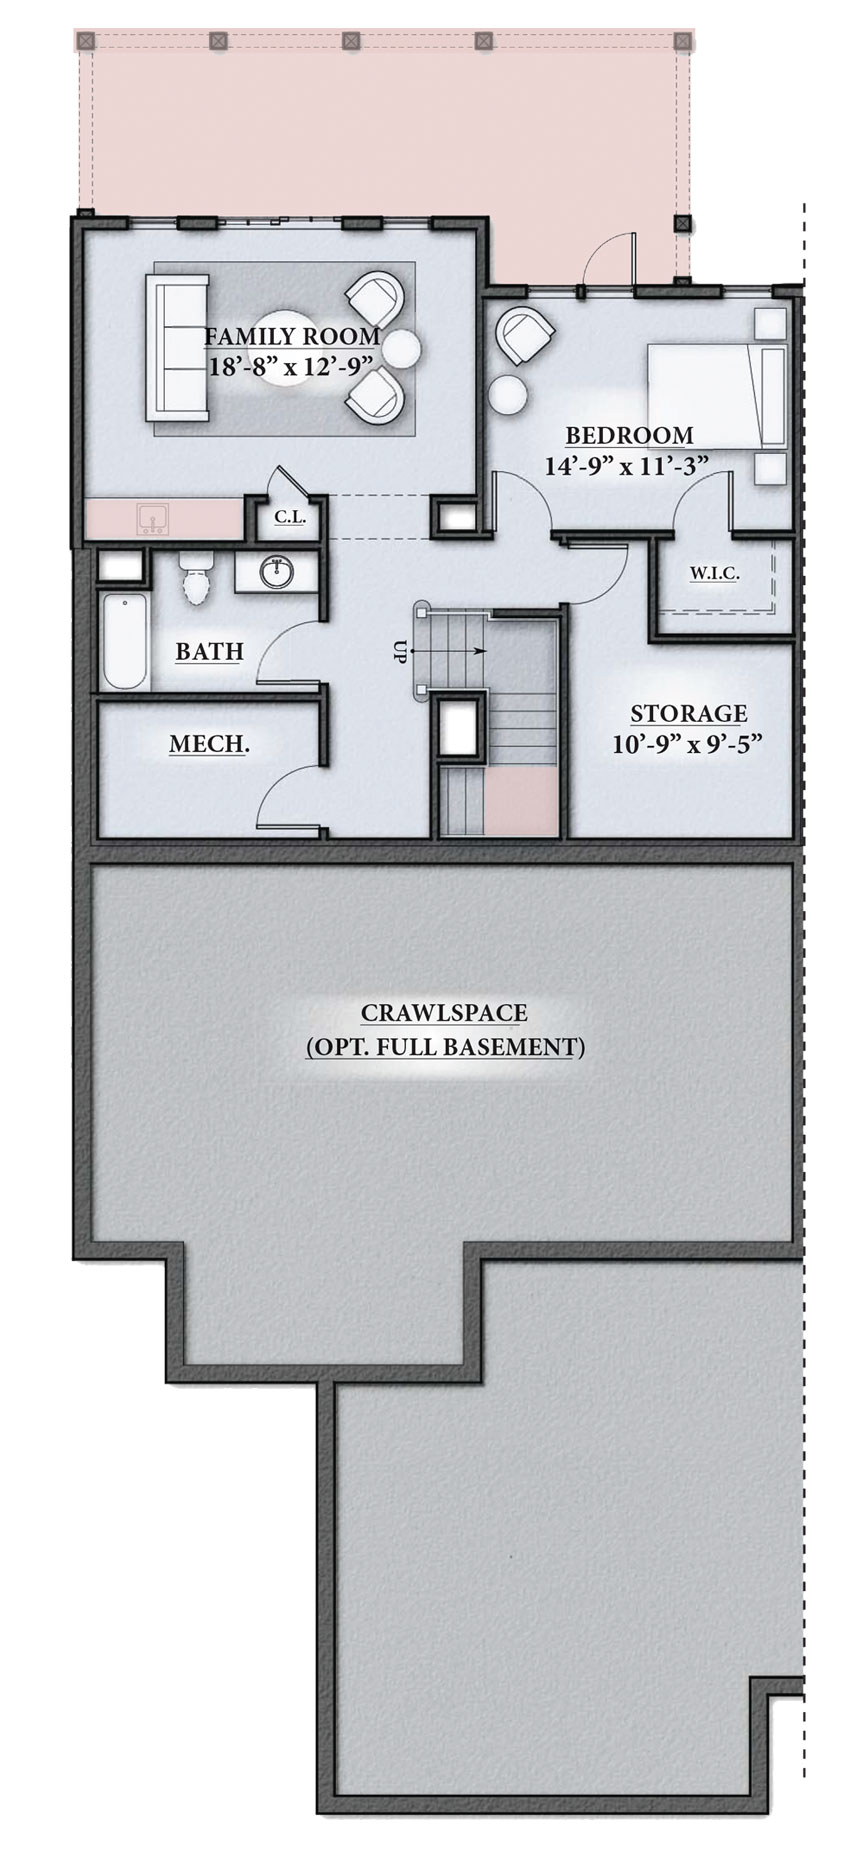 Westerly Floor Plan Lower Level Villages Mount Hope Bay RI